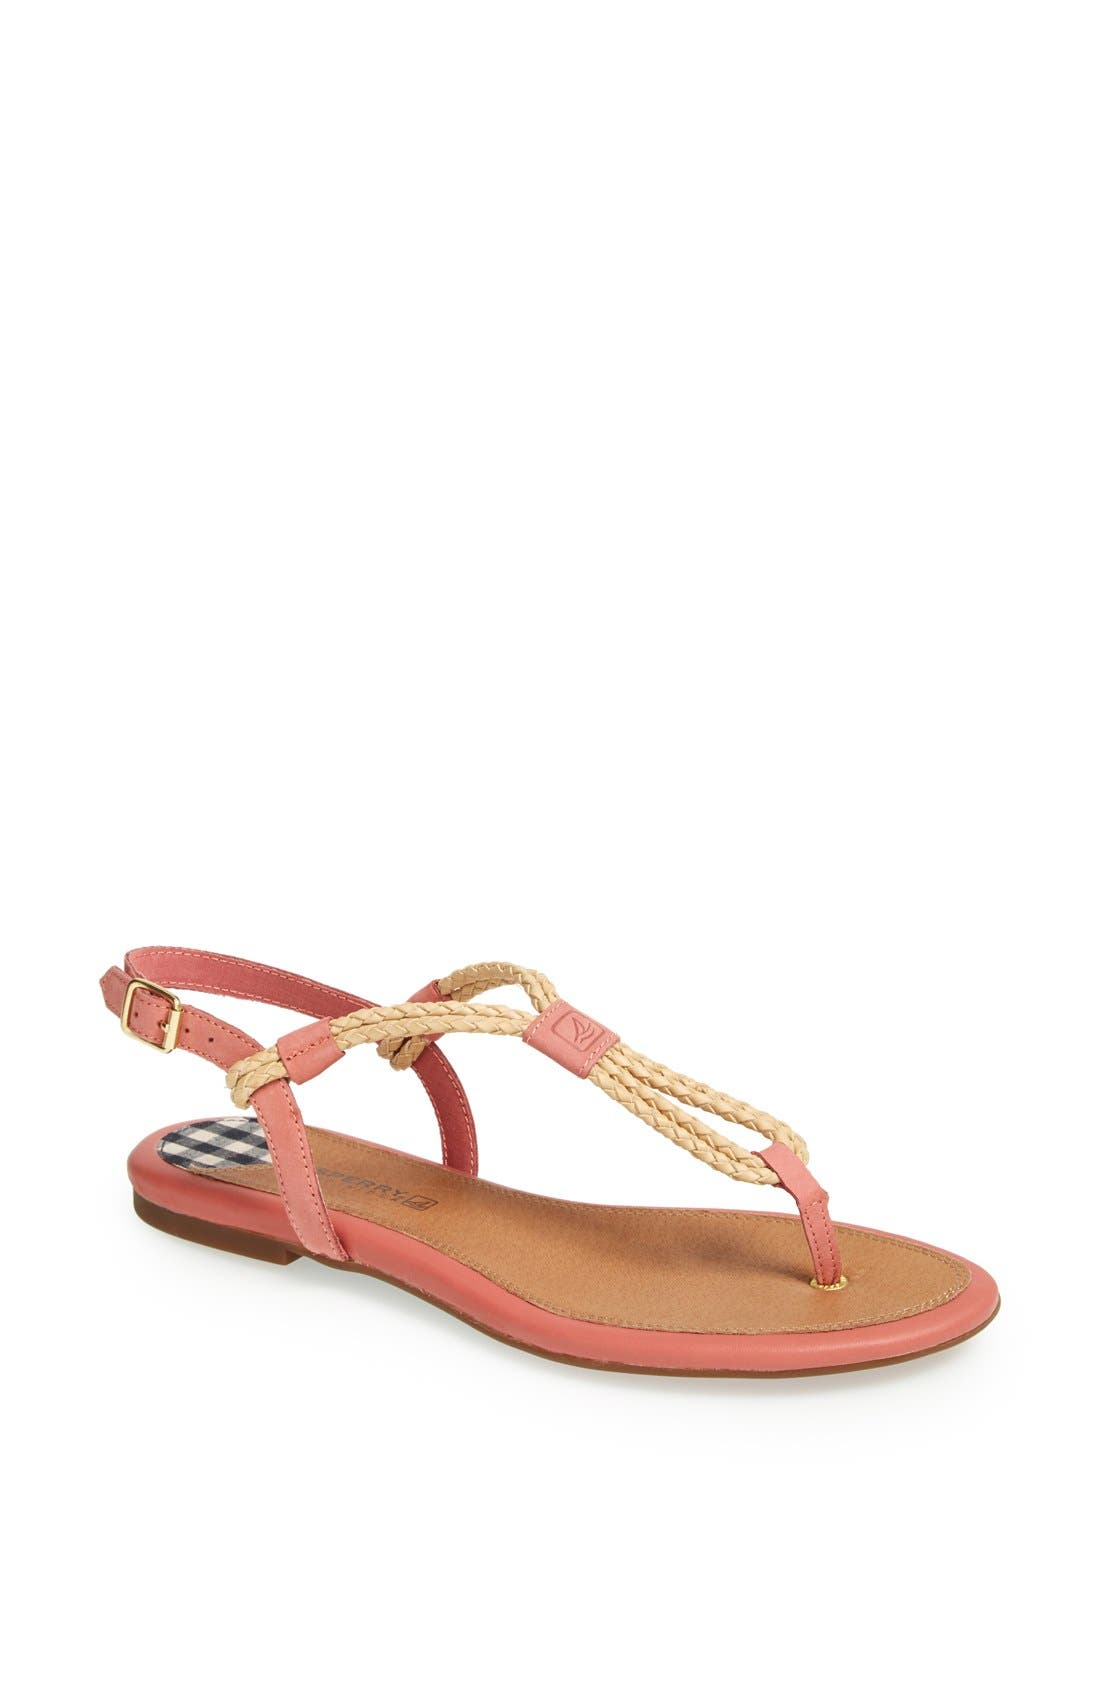 Main Image - Sperry Top-Sider® 'Lacie' Sandal